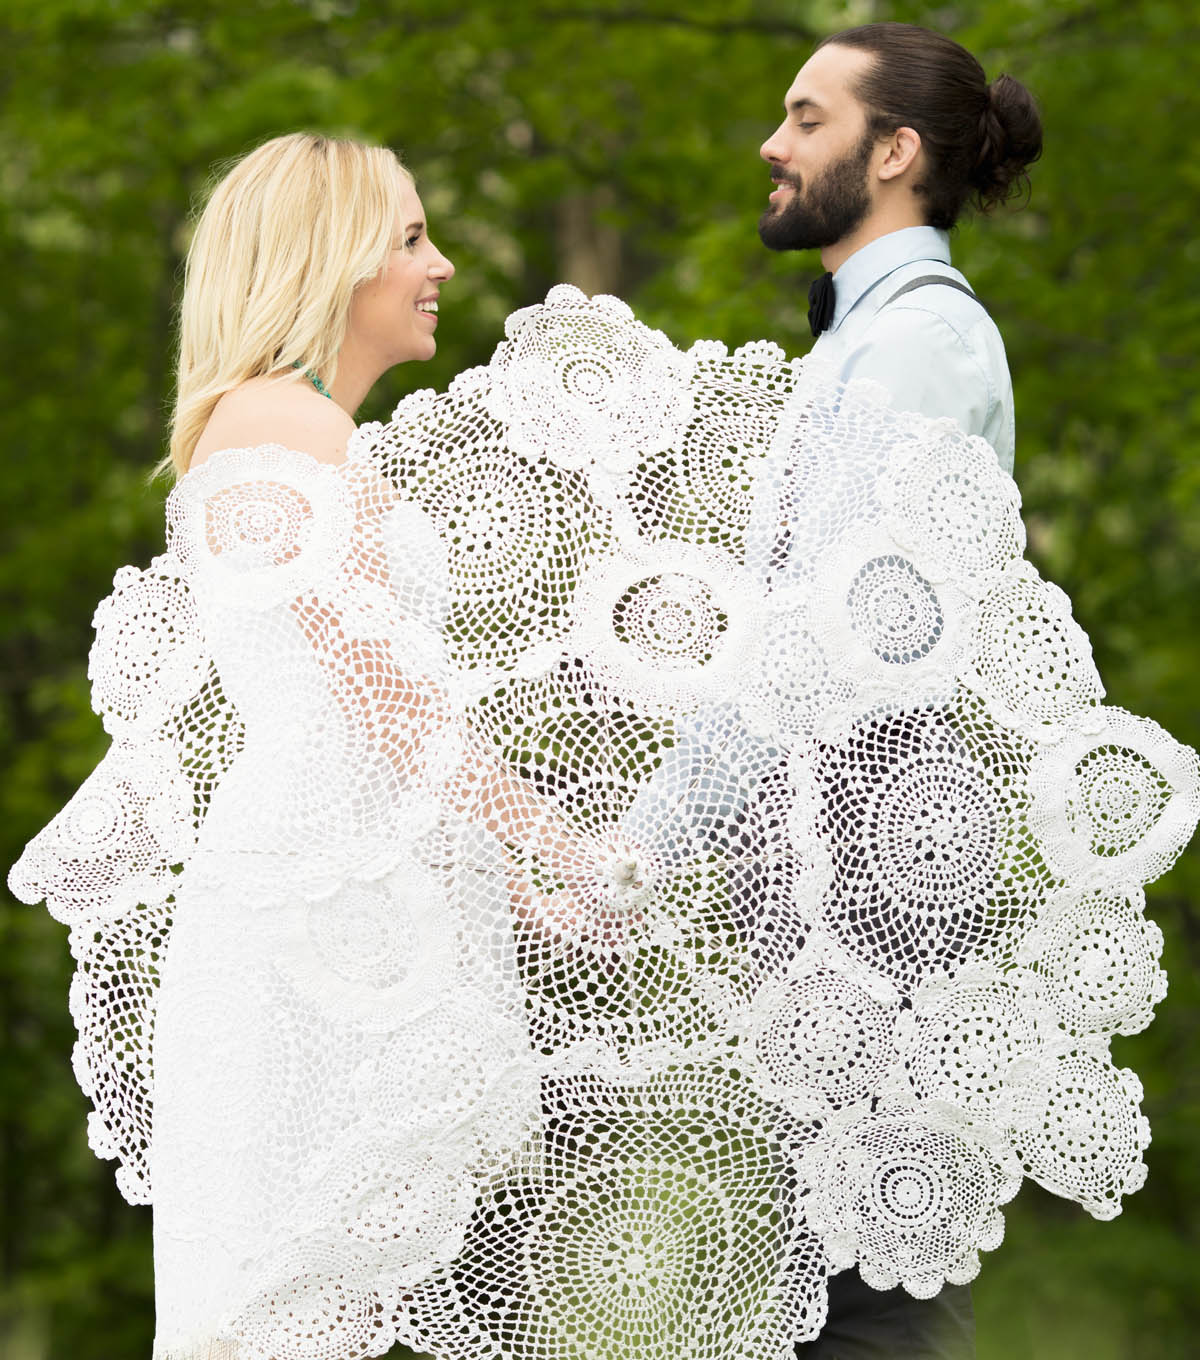 Doily Umbrella